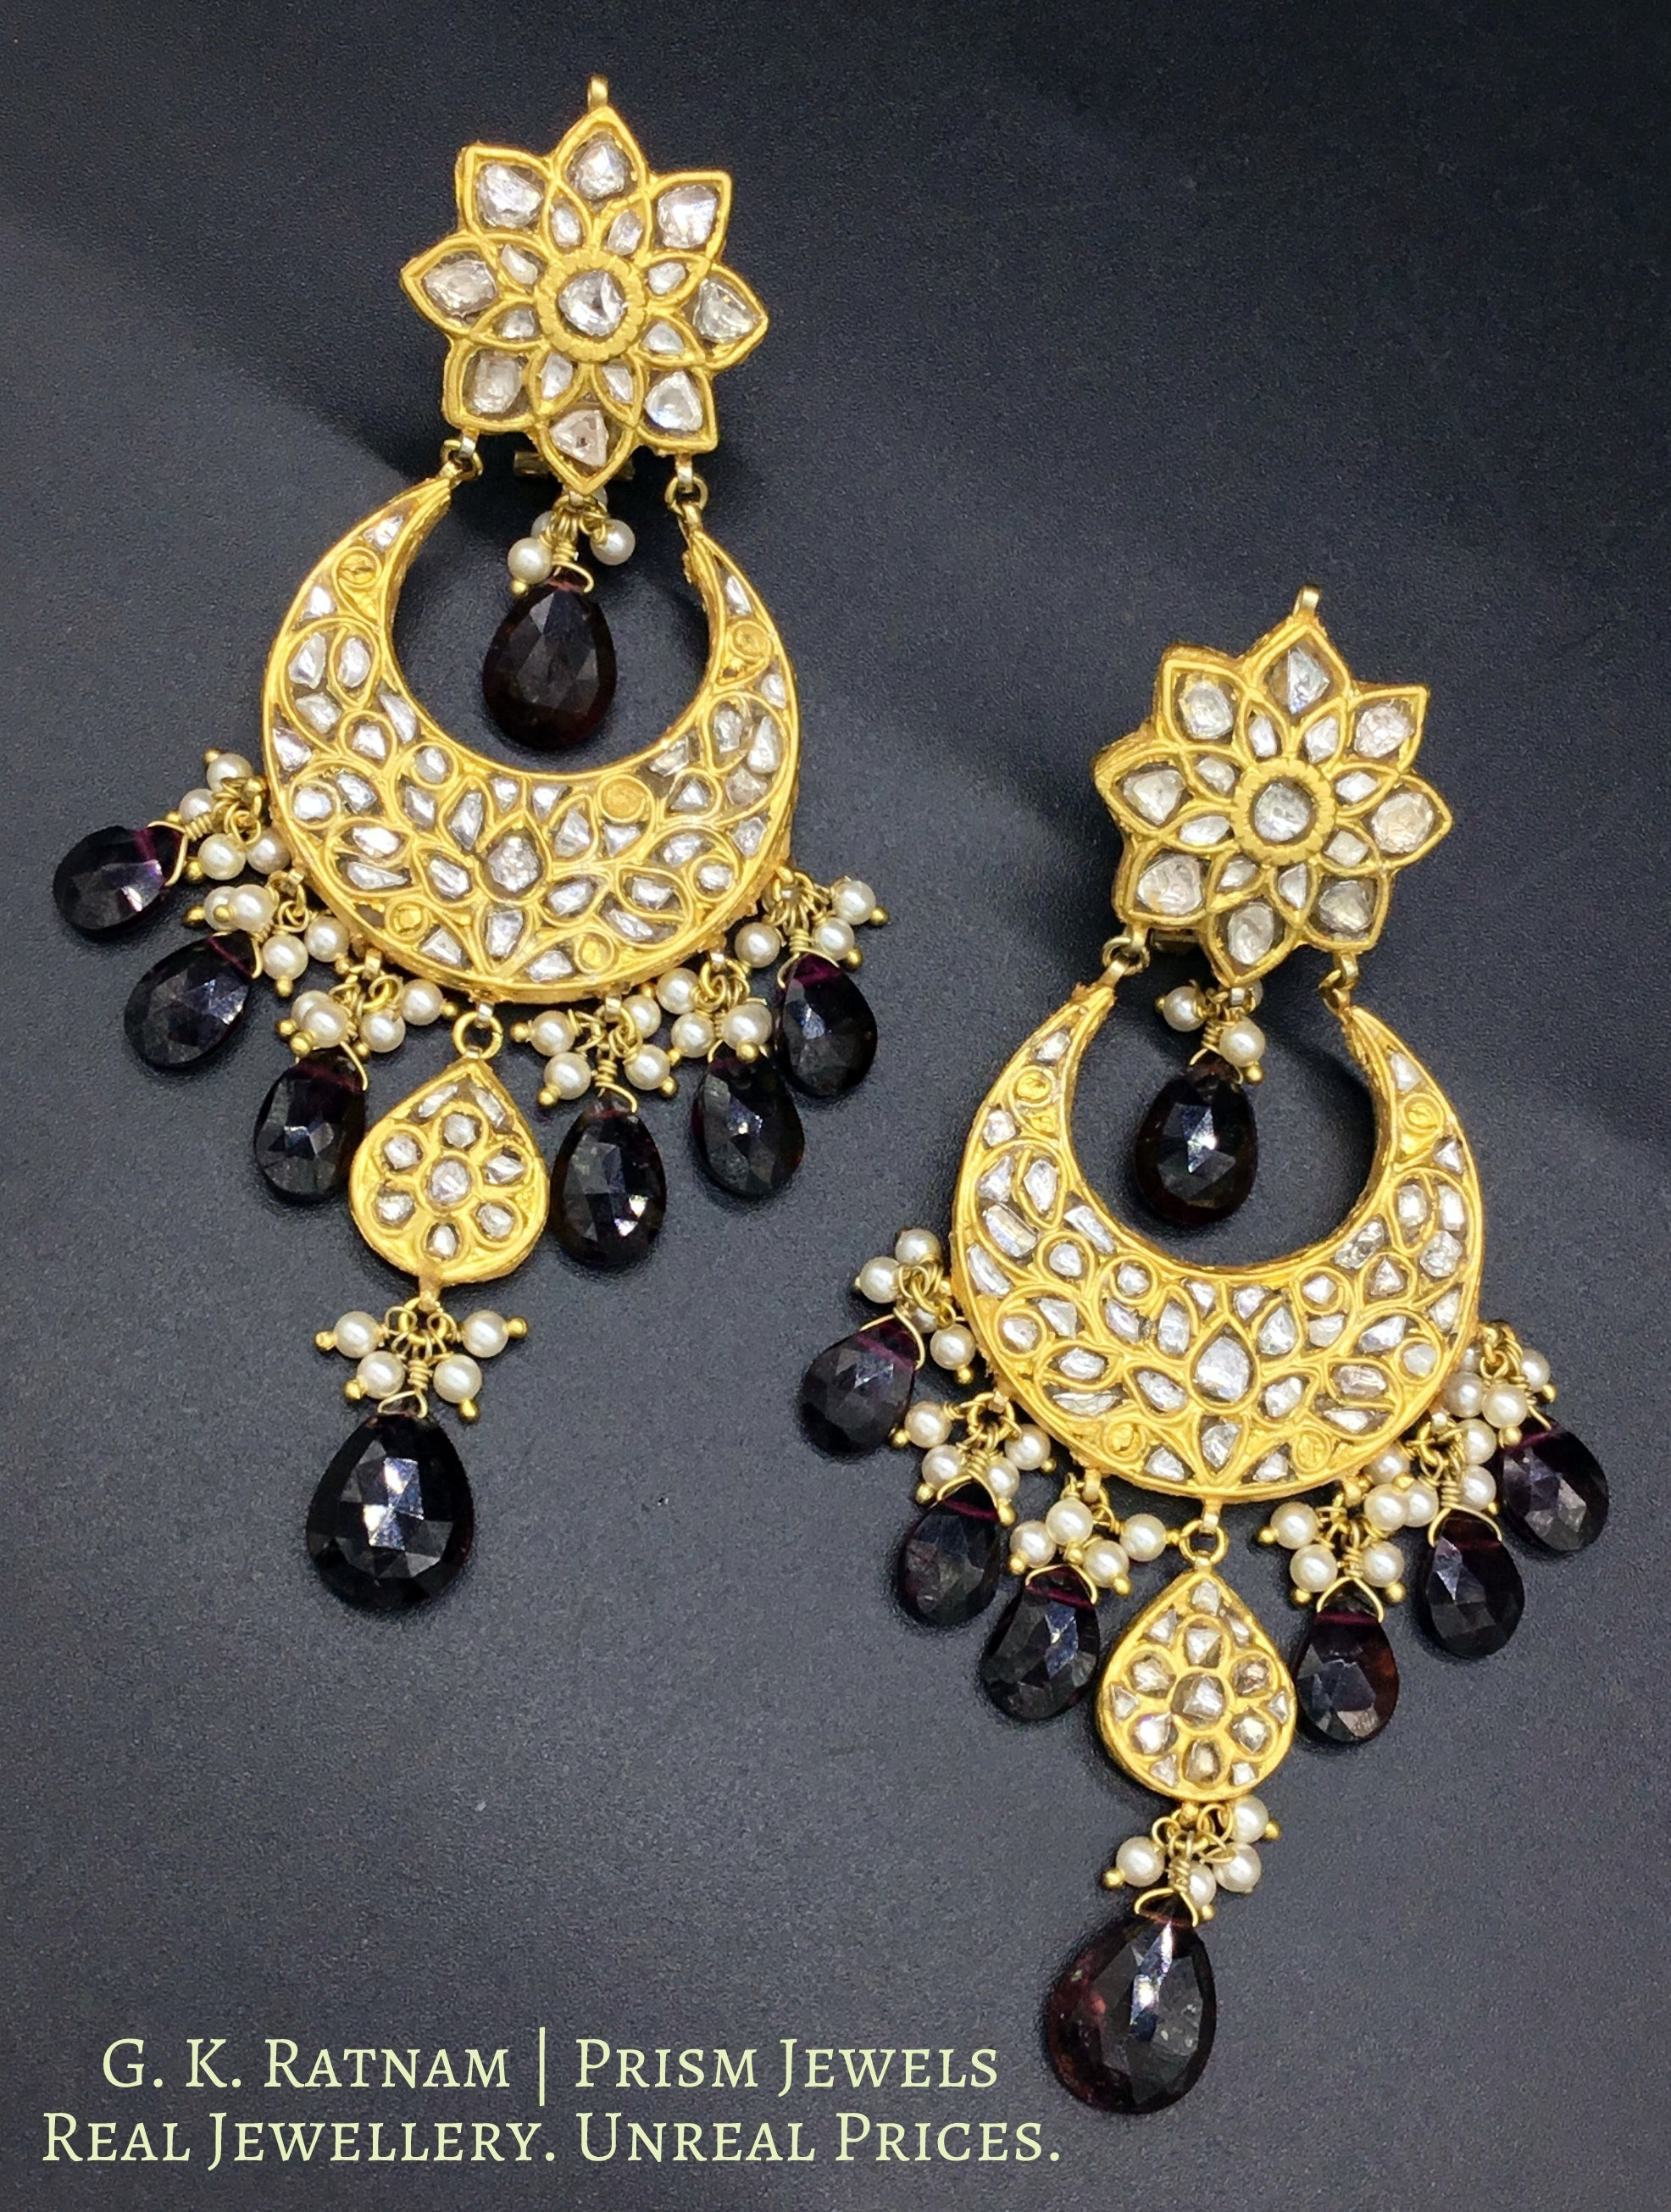 23k Gold and Diamond Polki Chand Bali Earring Pair with Mozambique Garnets - gold diamond polki kundan meena jadau jewellery